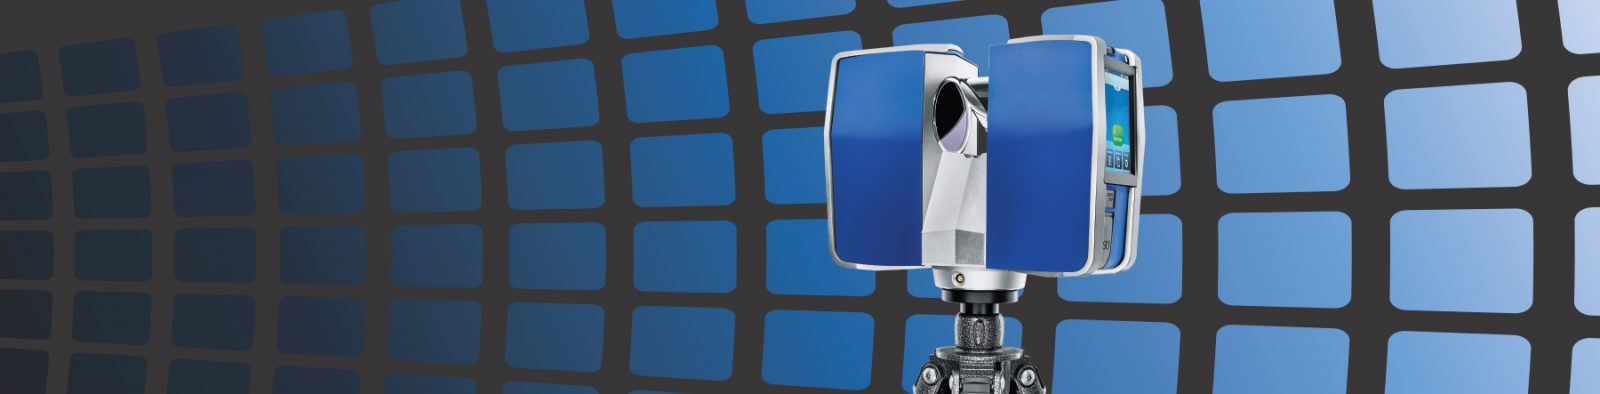 3D Kaser Scanning | Repro Products